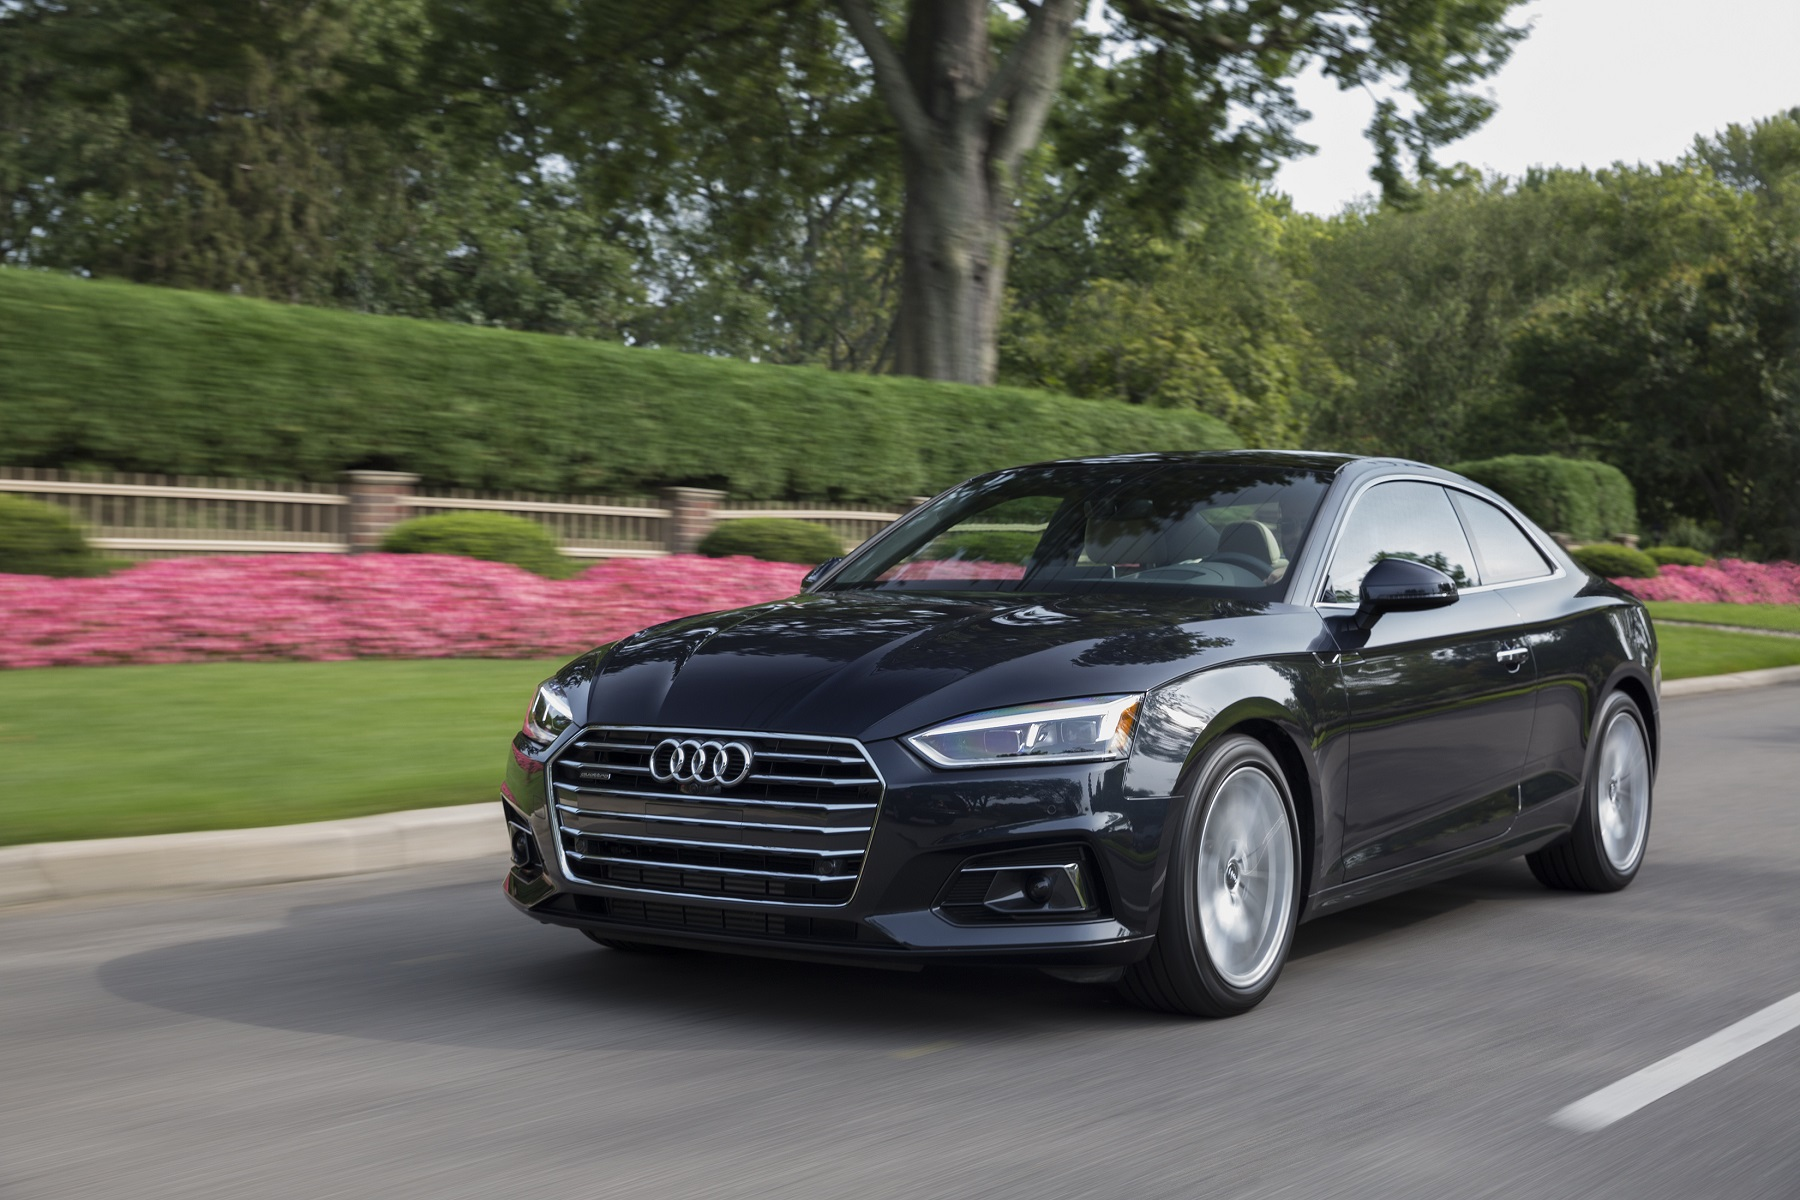 Manufacturer photo: Featuring a completely new powertrain, the A5 coupe comes standard equipped with a 2.0-liter TFSI four-cylinder engine and, for the first time, a seven-speed S tronic dual-clutch transmission, which melds efficiency with dynamic shifting characteristics to help optimize fuel consumption